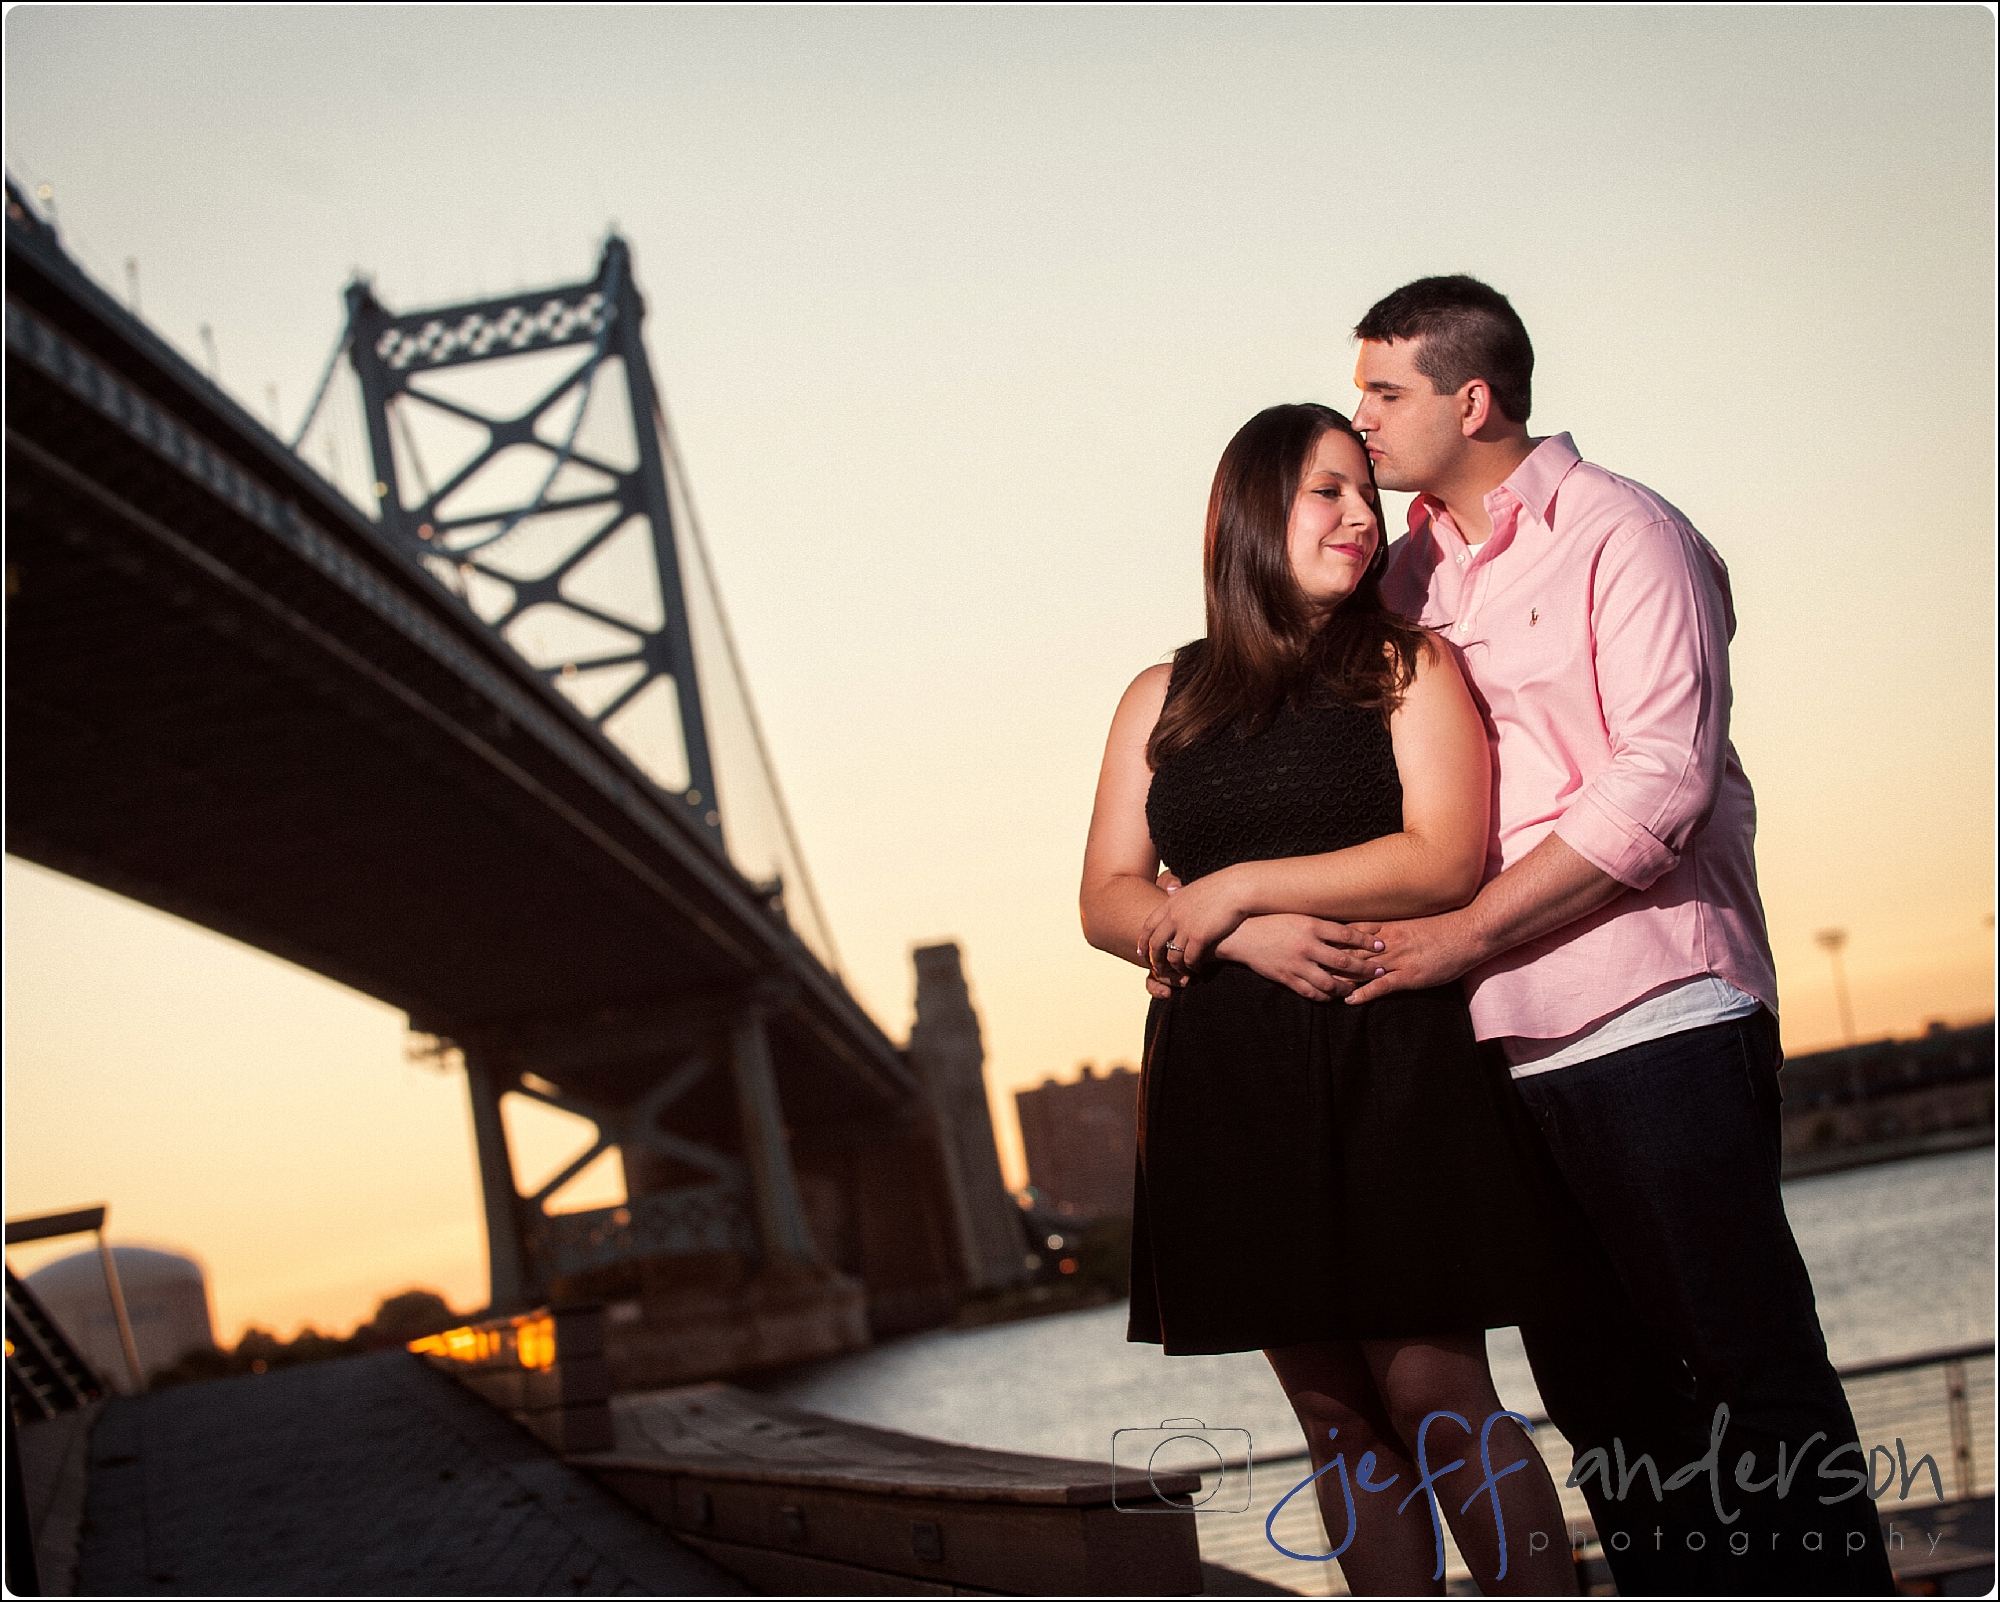 ben franklin bridge,church street studio photographer,destination wedding photographer,engagement session,jeff anderson photography,old city philadelphia,philadelphia wedding photographer,south jersey wedding photographer,sunrise photos,val & greg,wedding photography,